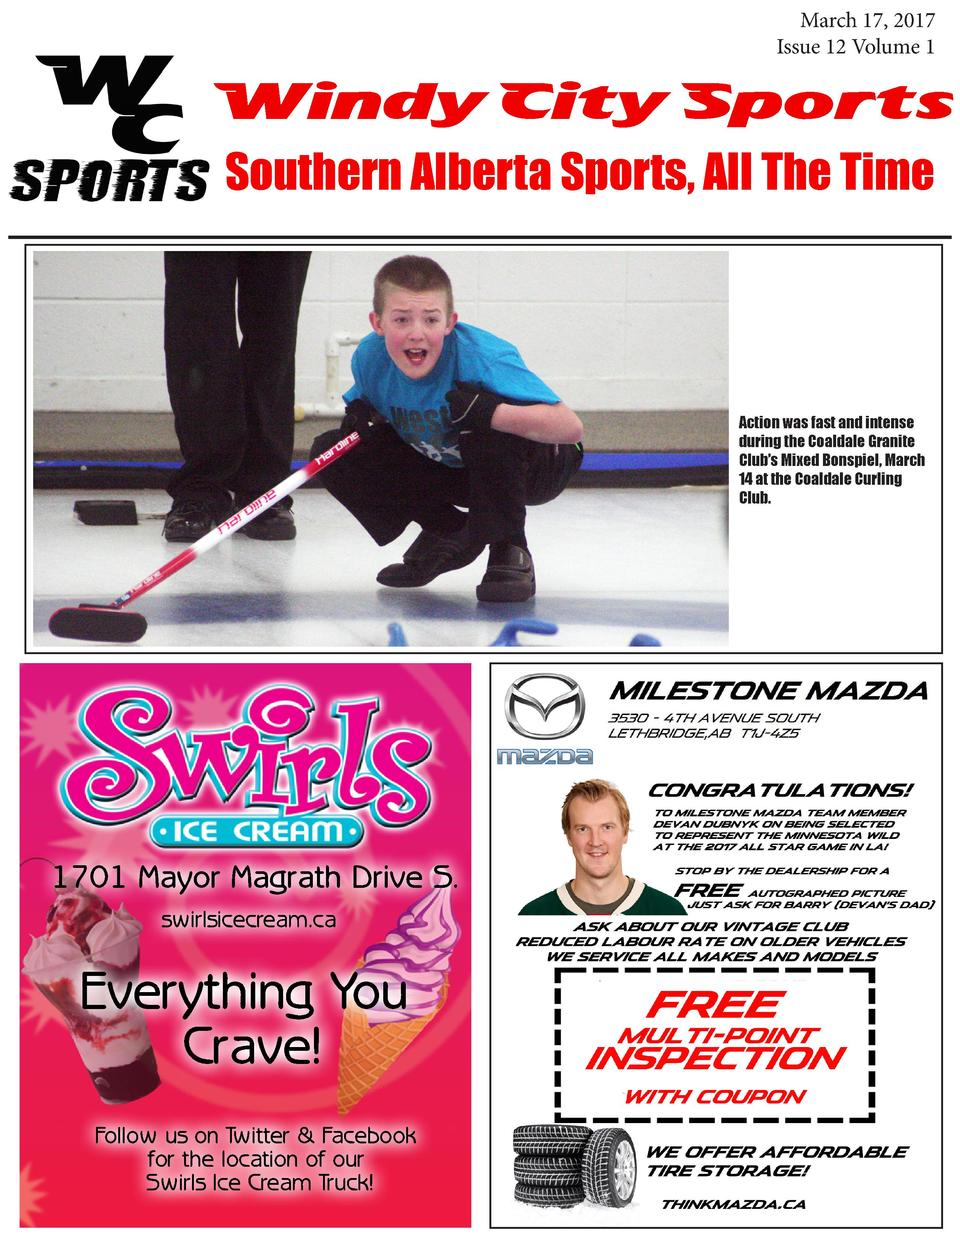 March 17, 2017 Issue 12 Volume 1  Windy City Sports Southern Alberta Sports, All The Time  Action was fast and intense dur...